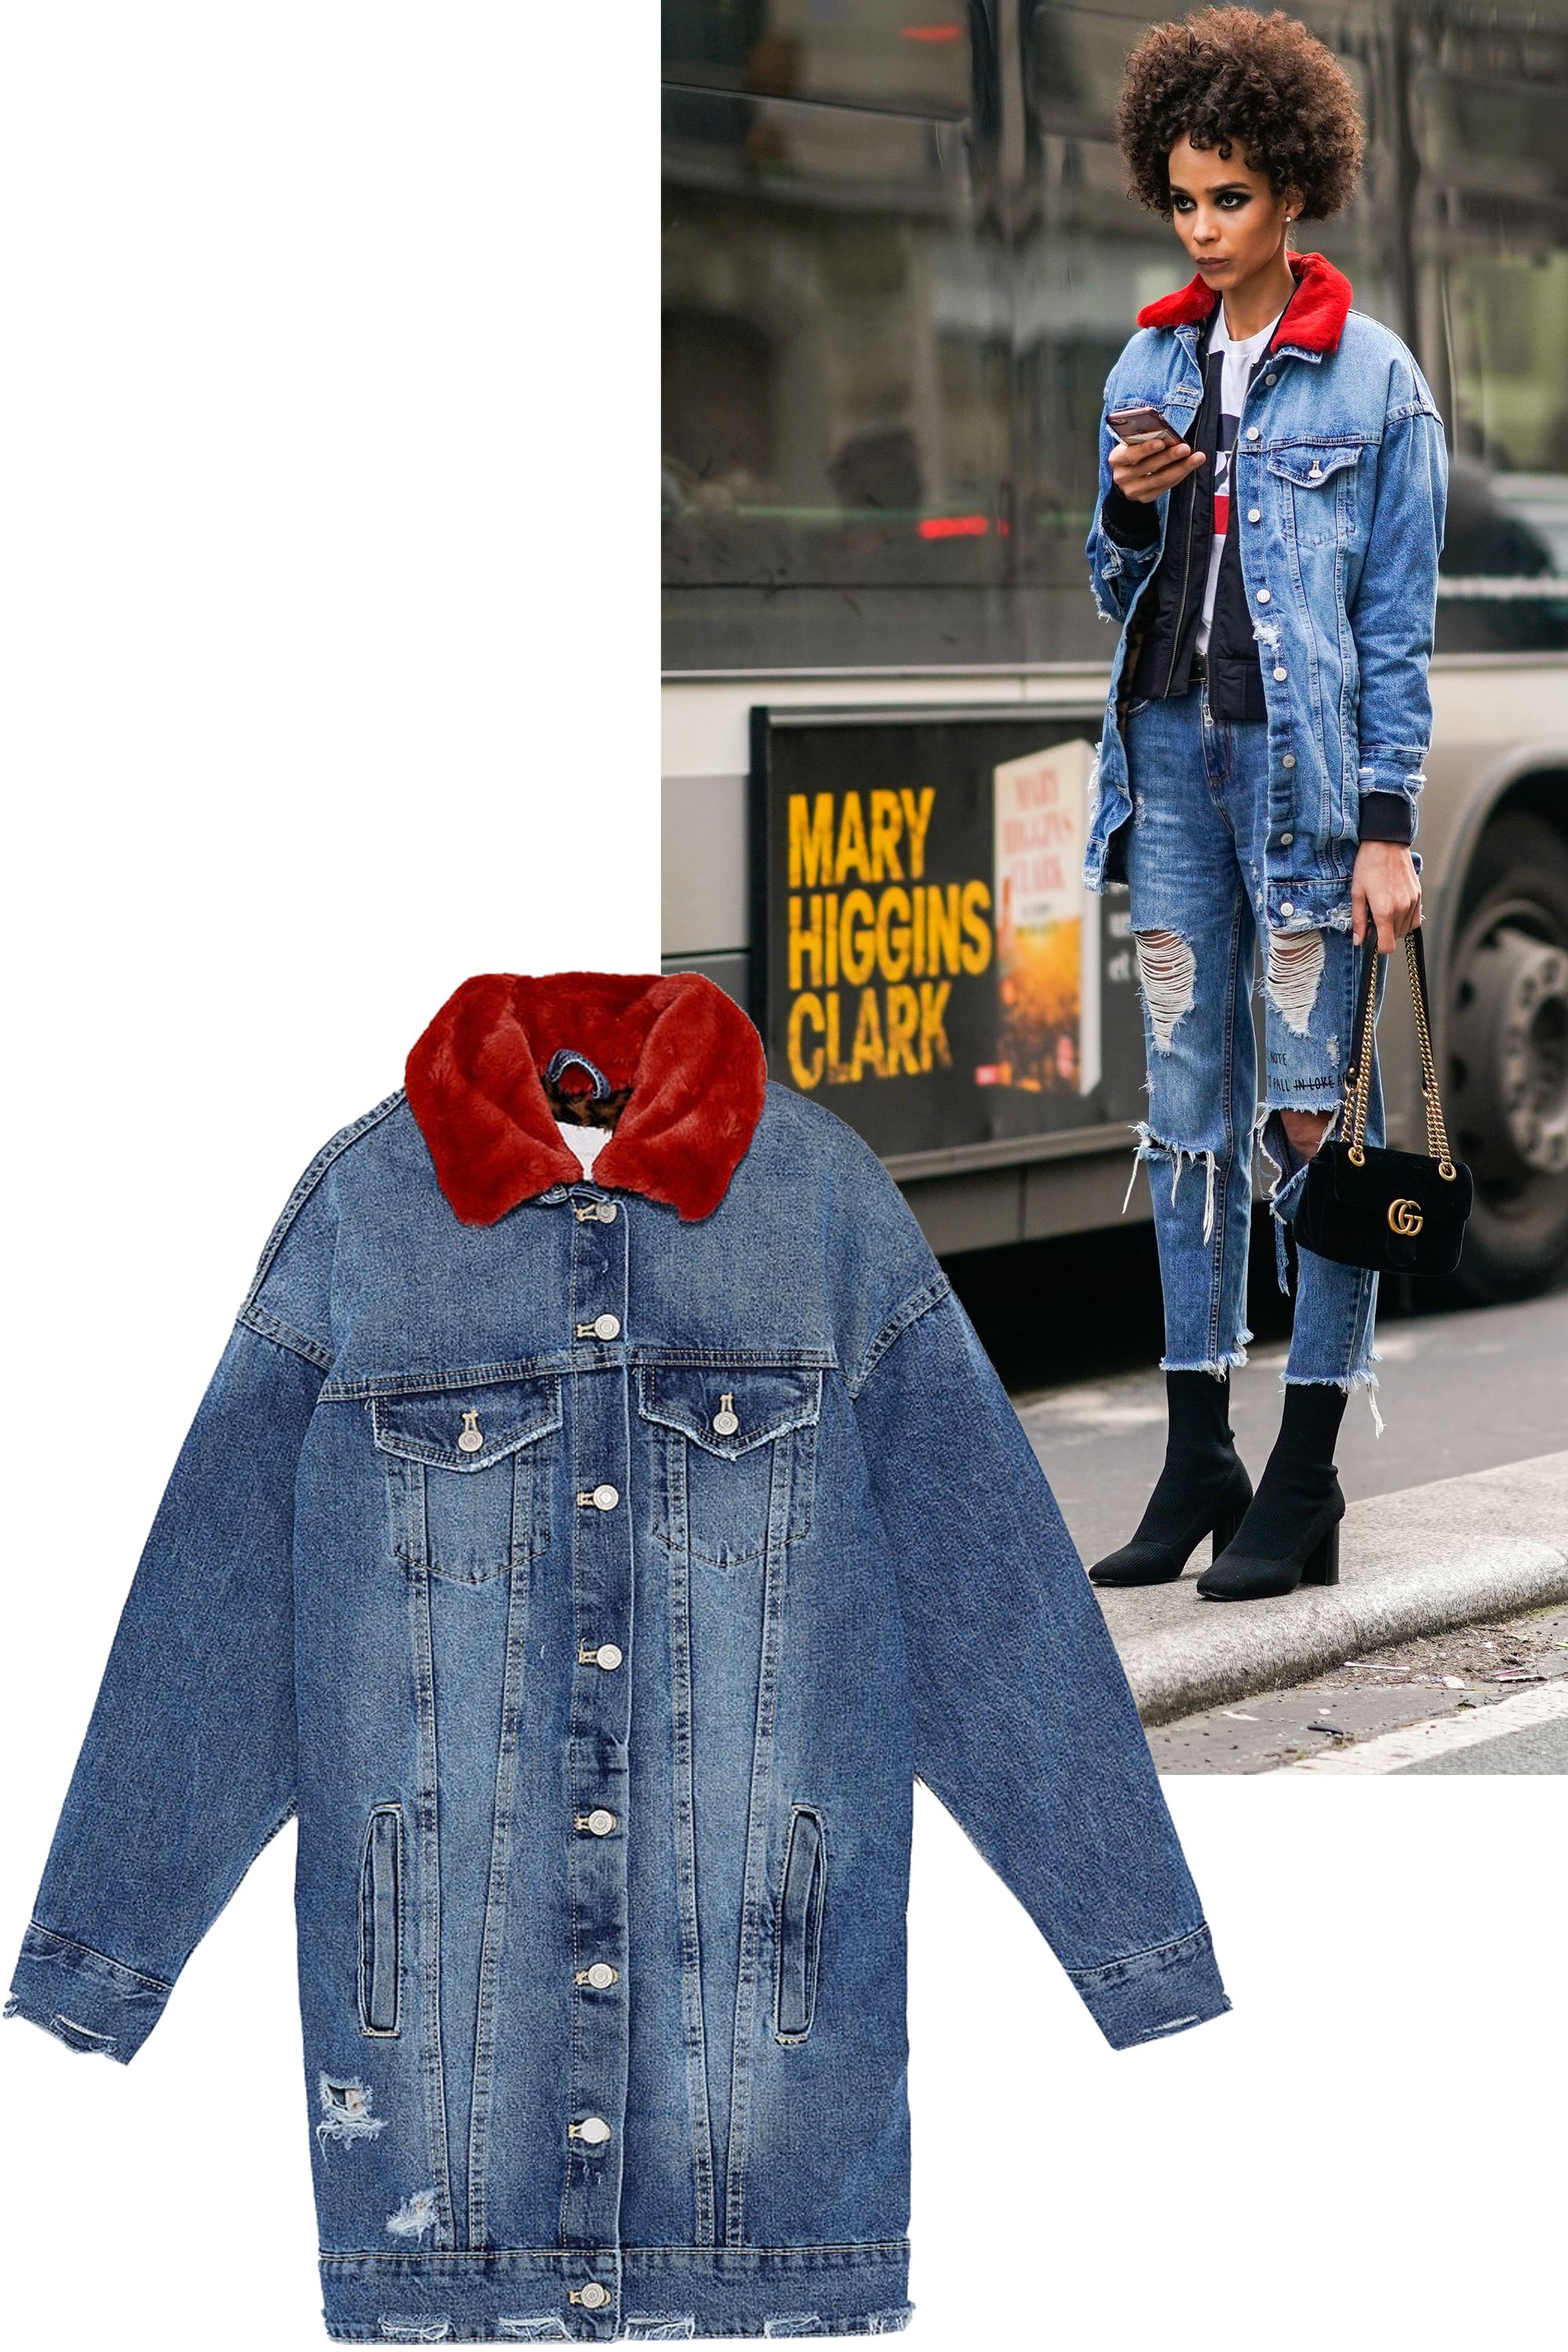 hbz-the-list-denim-jackets-1-getty-1518402600.jpg (2000×3000)